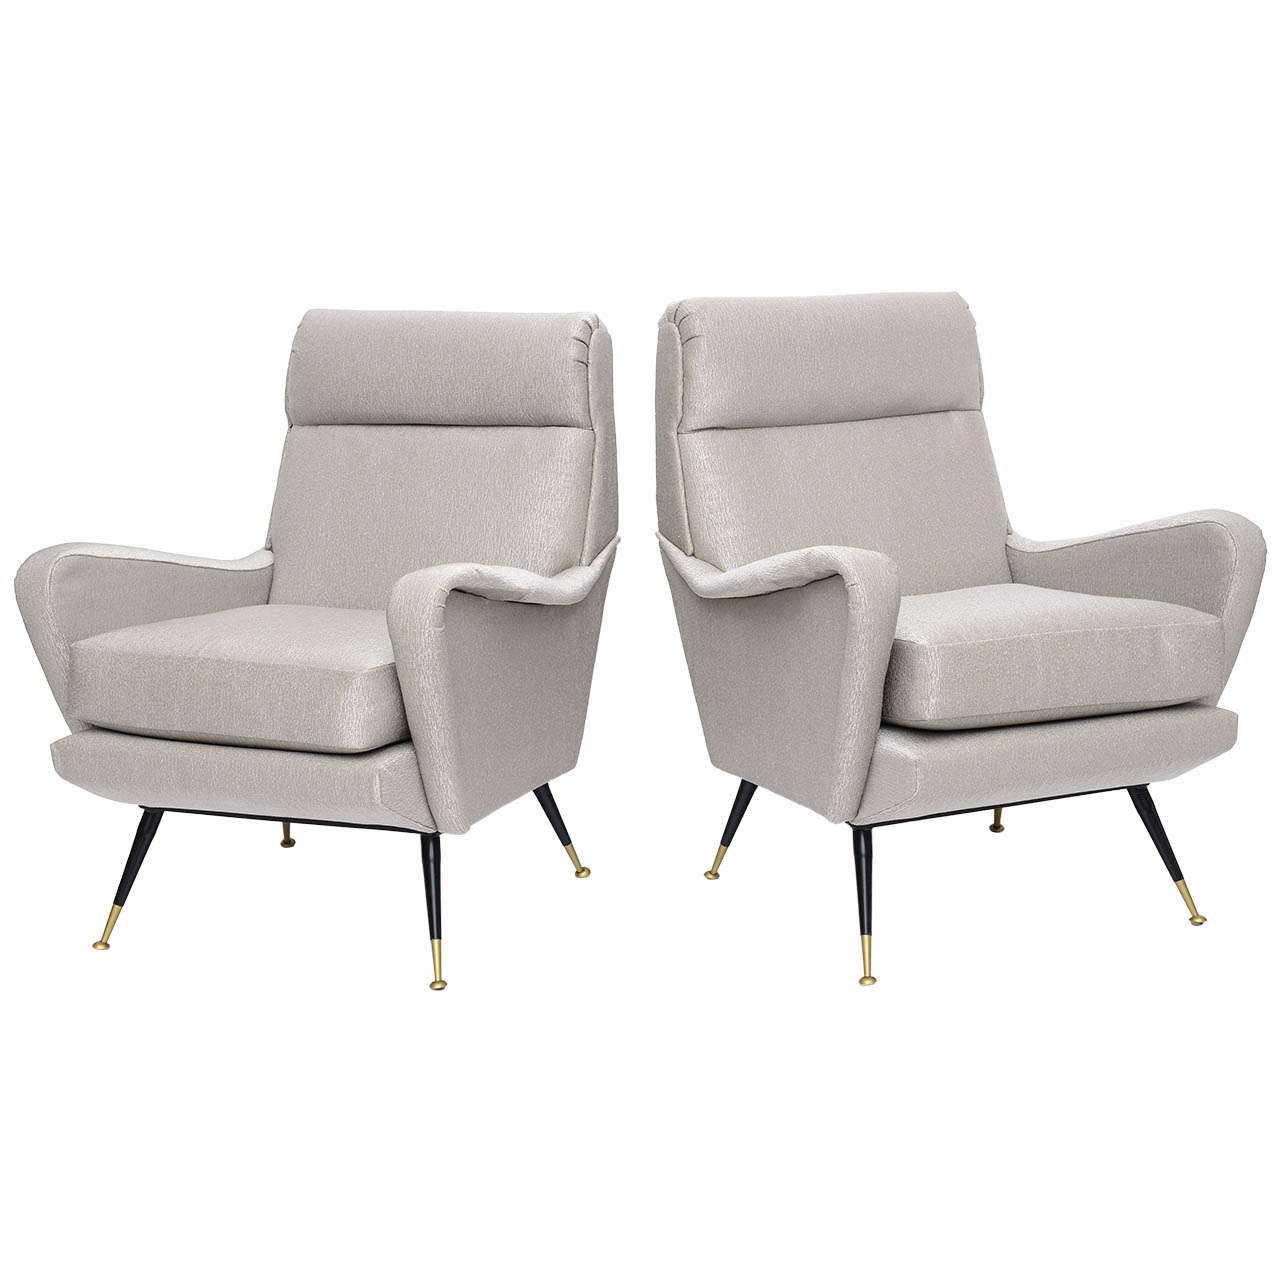 Pair of Italian Brass Enameled and Upholstered Armchairs, Style Carlo de Carli